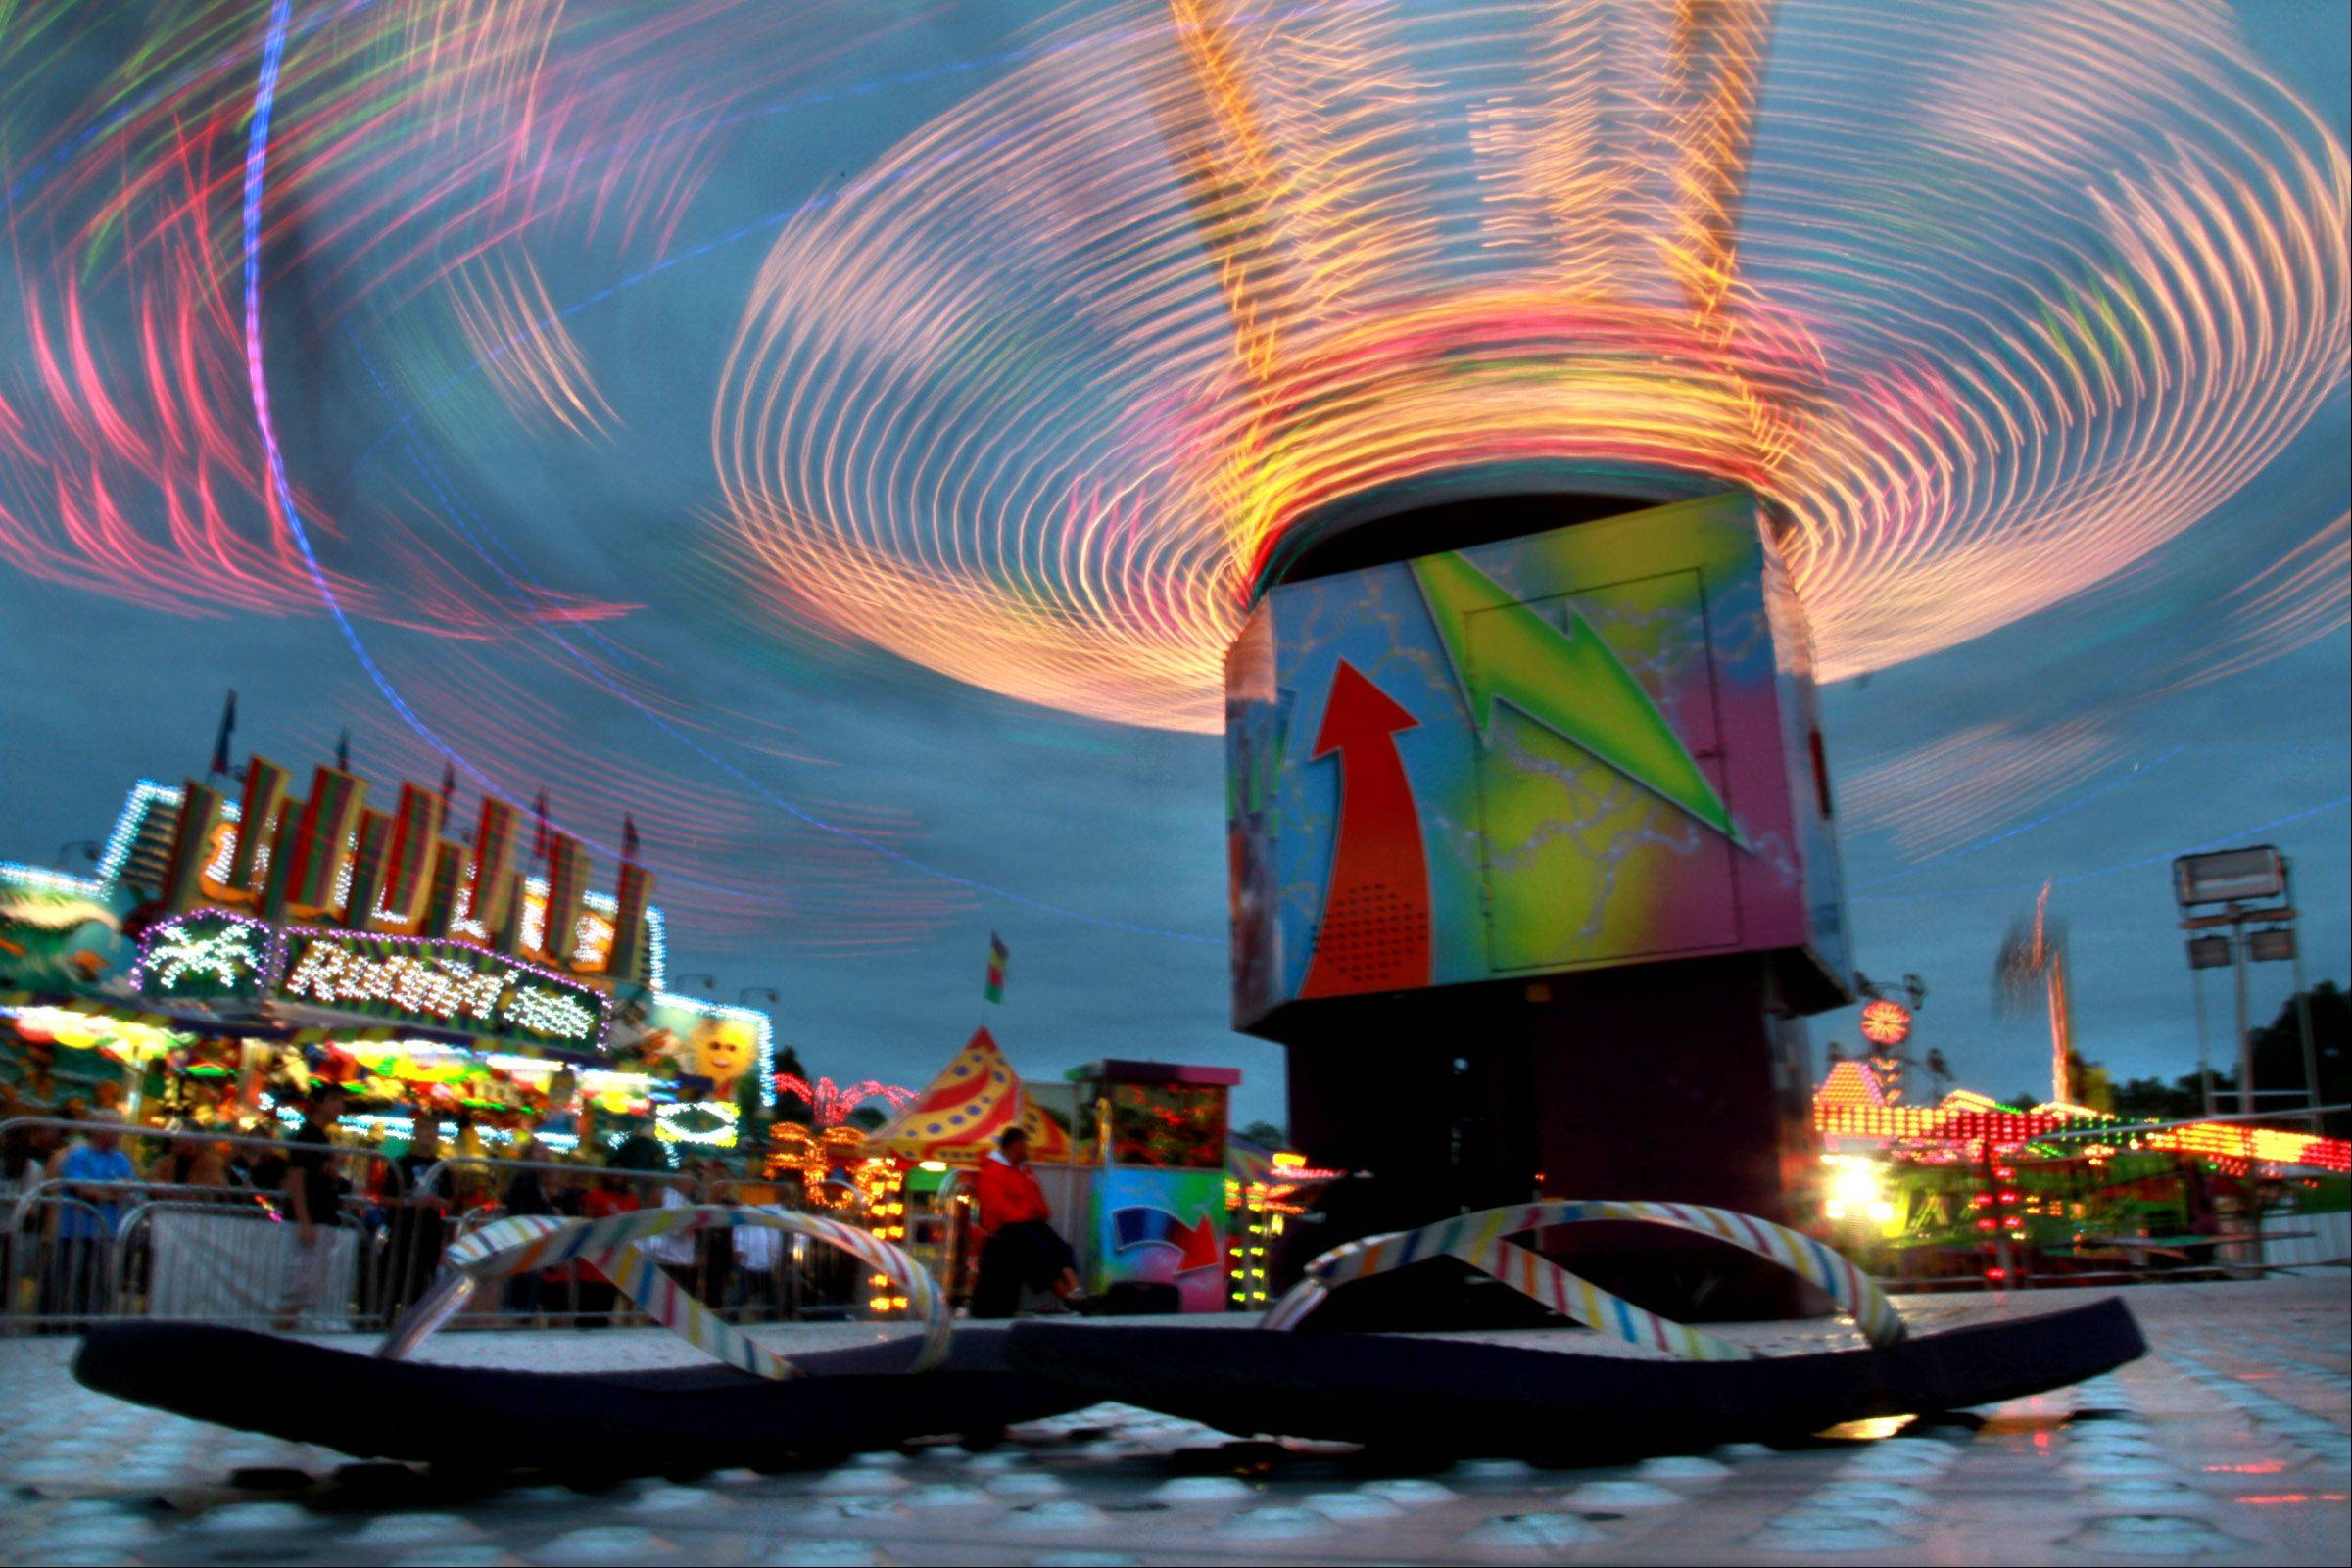 Rides light up the sky at last year's Wauconda Fest.